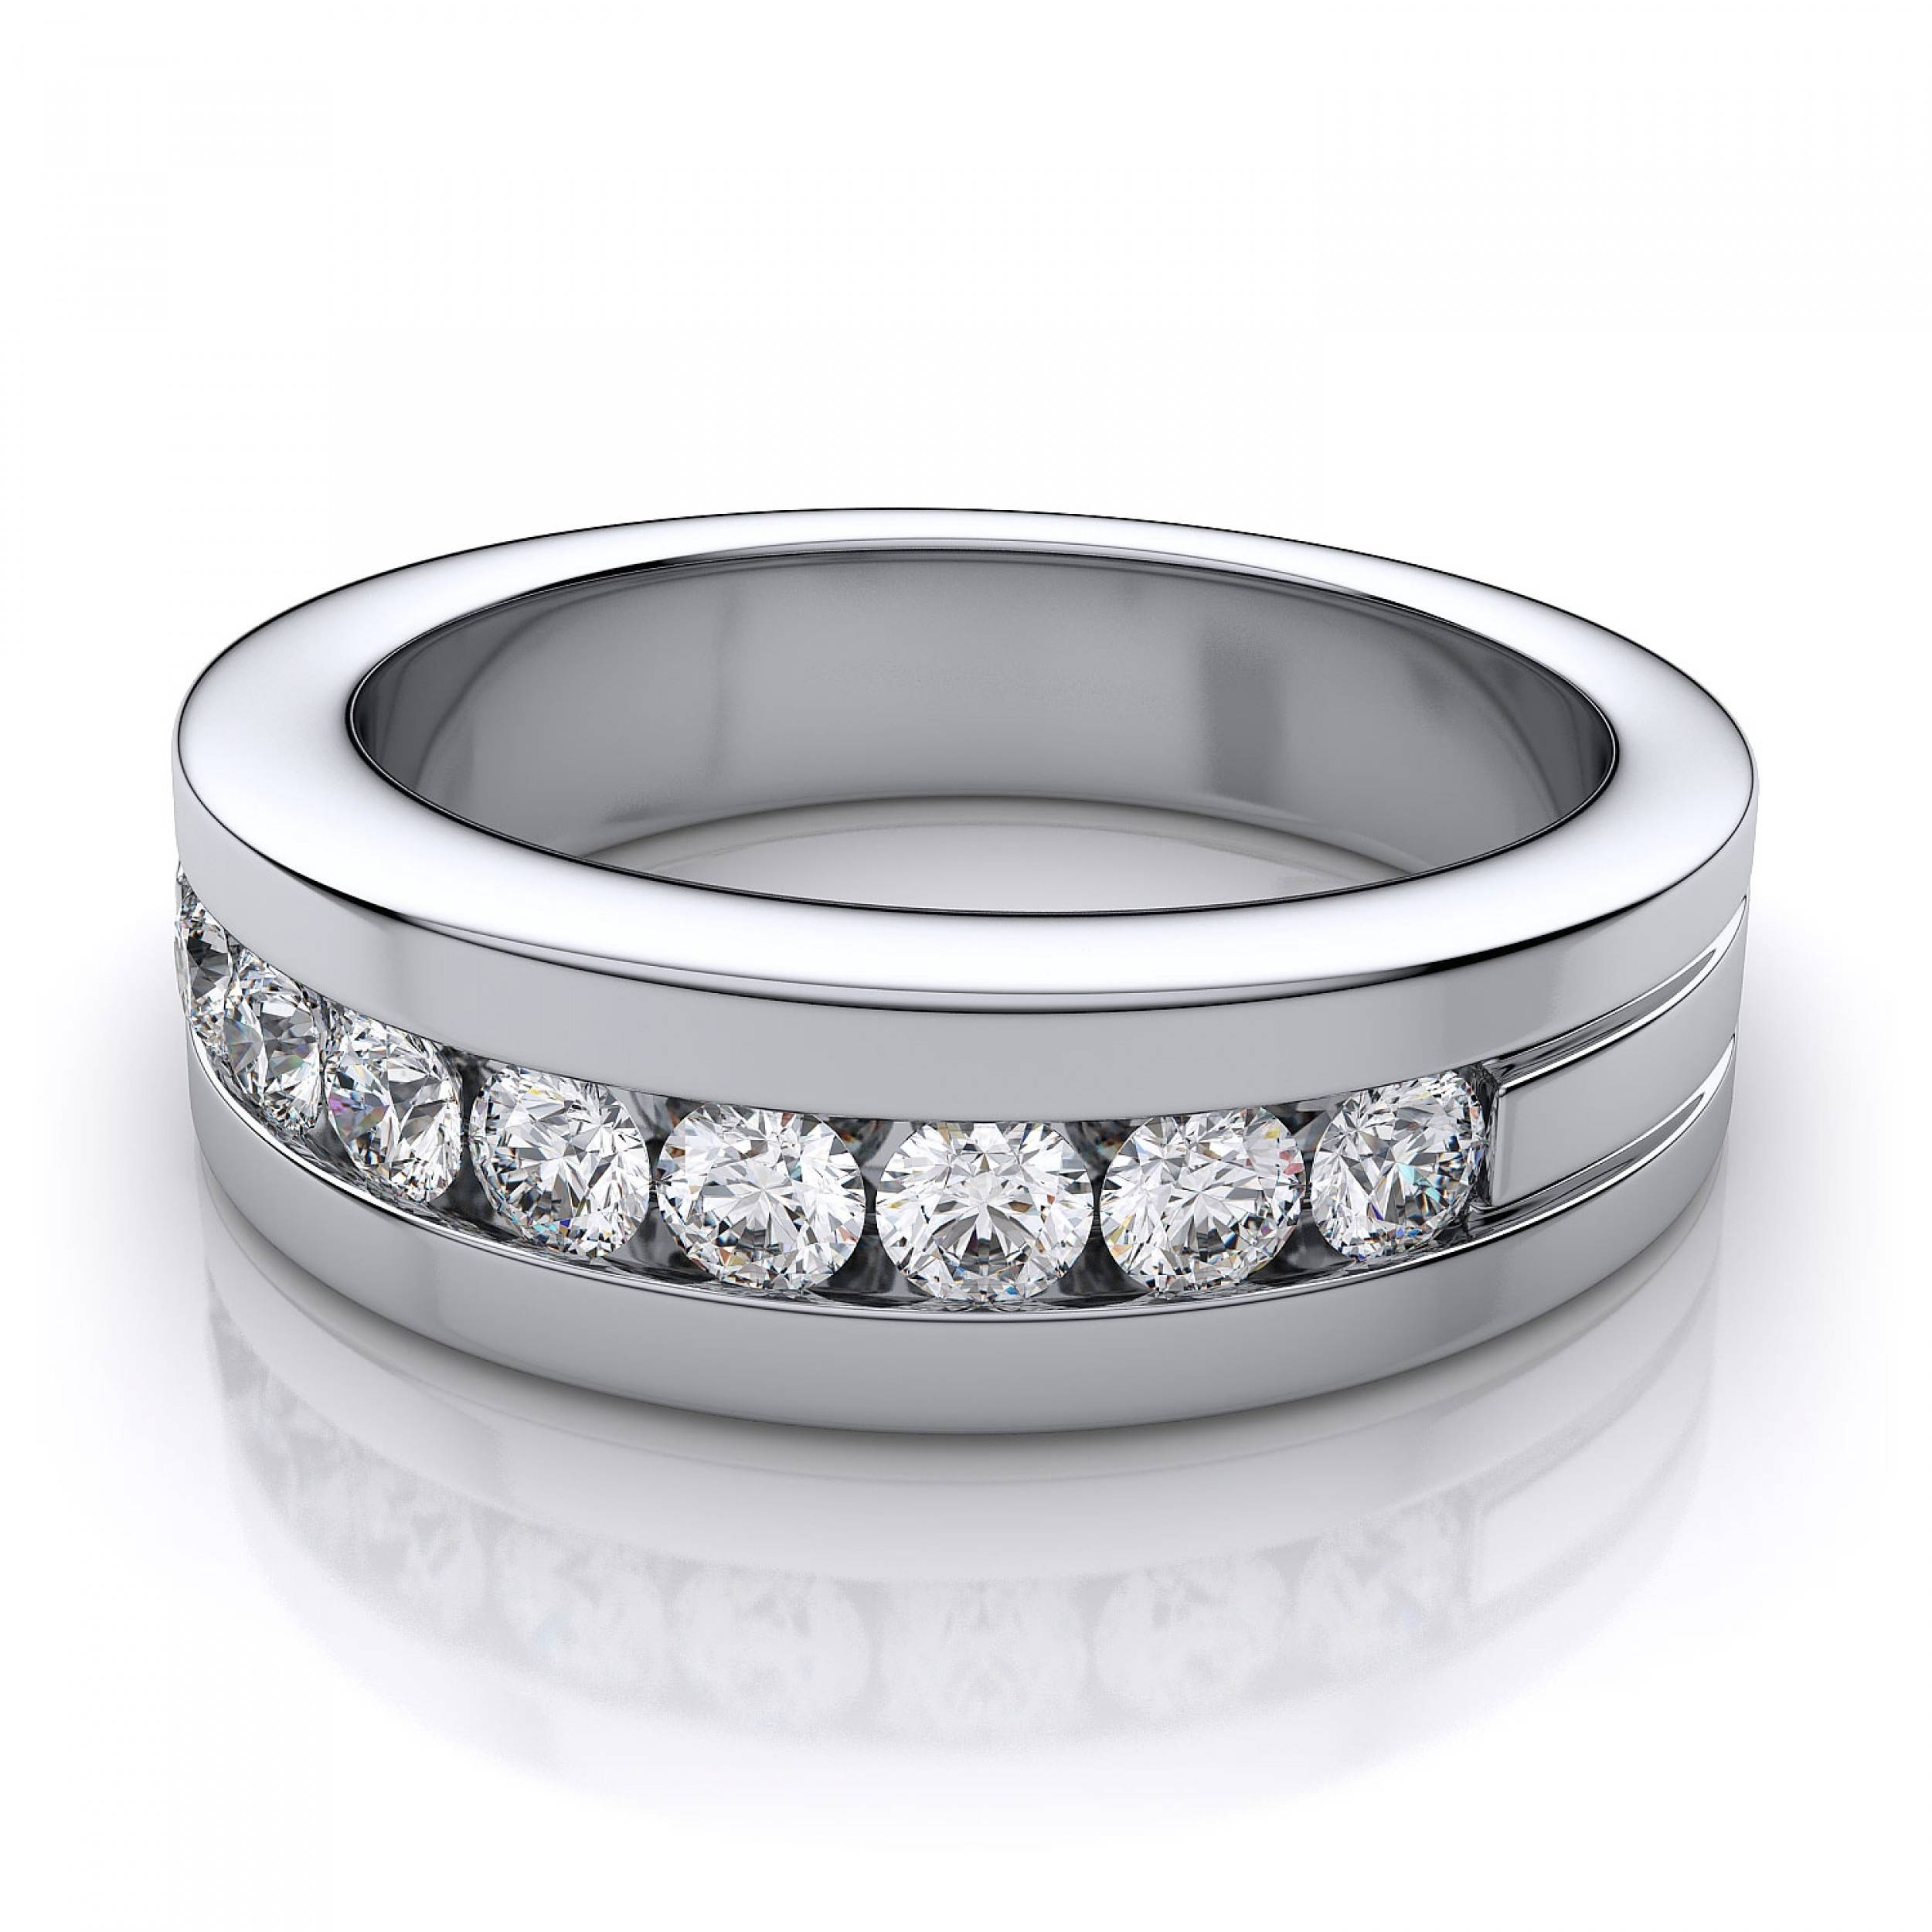 6.3Mm Men's Channel Set Diamond Wedding Ring In 18K White Gold Throughout White Gold Mens Wedding Rings (Gallery 11 of 15)